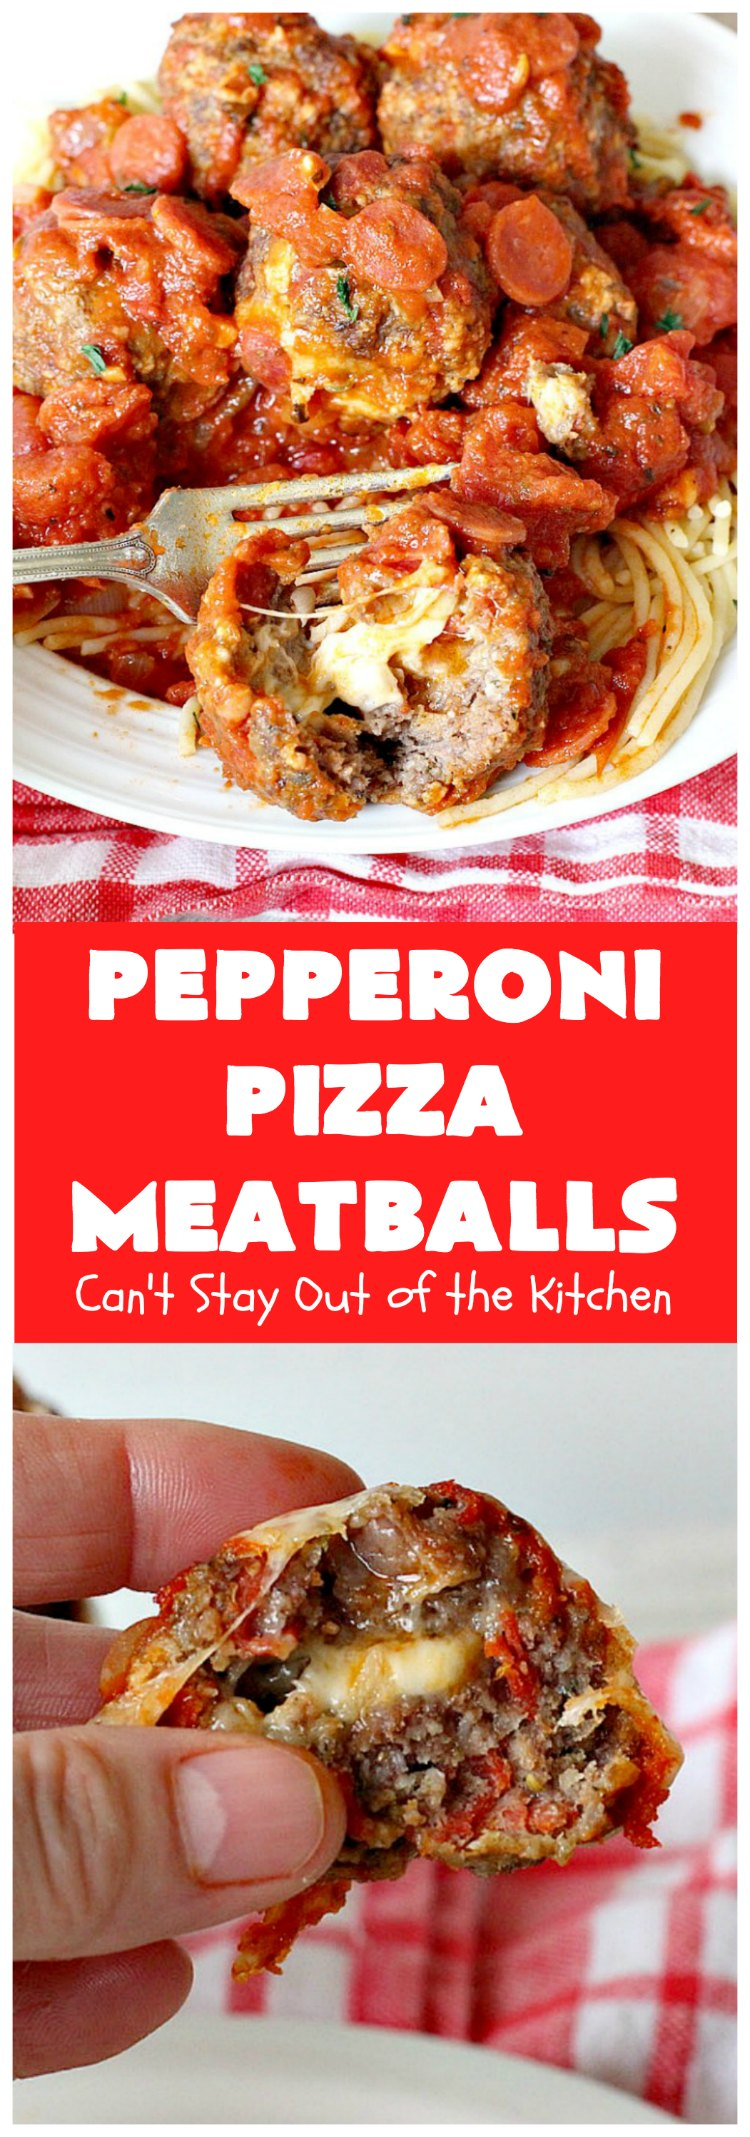 Pepperoni Pizza Meatballs | Can't Stay Out of the Kitchen | This is like eating #PepperoniPizza but in #meatball form! These fabulous #StuffedMeatballs are filled with #pepperoni & #MozzarellaCheese cubes. The #marinara sauce also includes #pepperoni. Irresistible & mouthwatering. Recipe can be made #GlutenFree or not. #Italian #pasta #PepperoniPizzaMeatballs